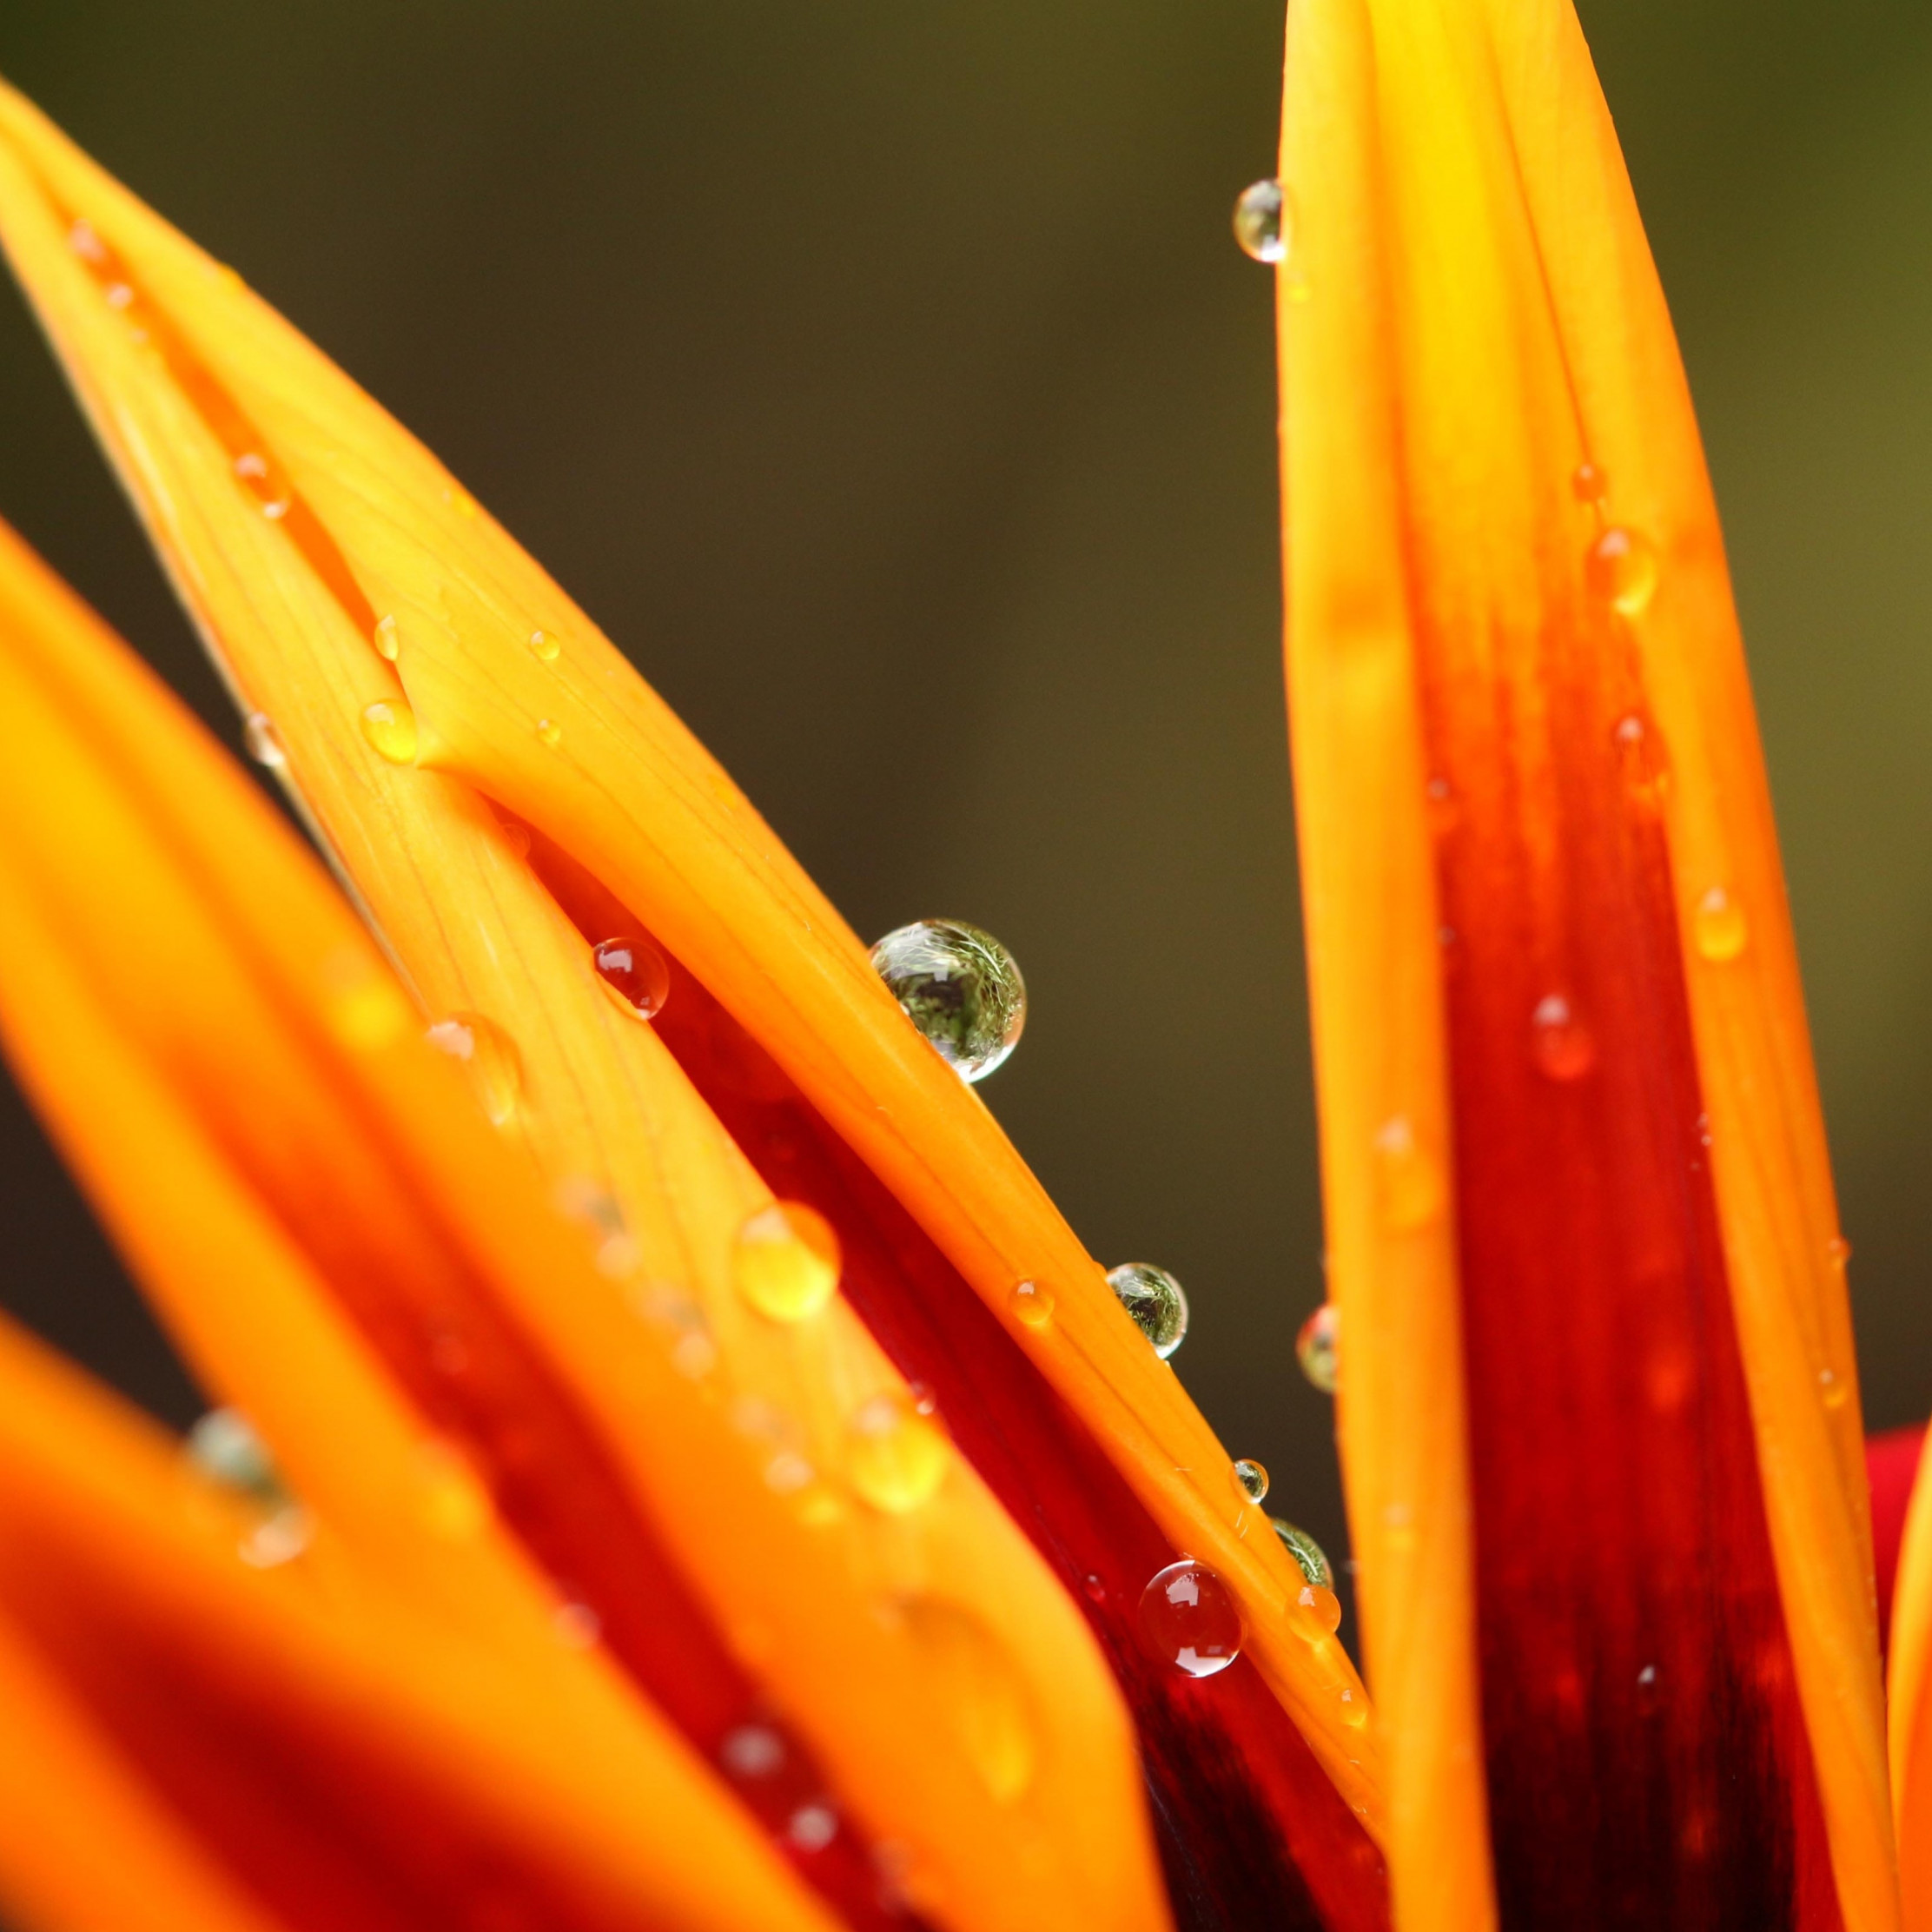 Dew on orange petals | 2224x2224 wallpaper